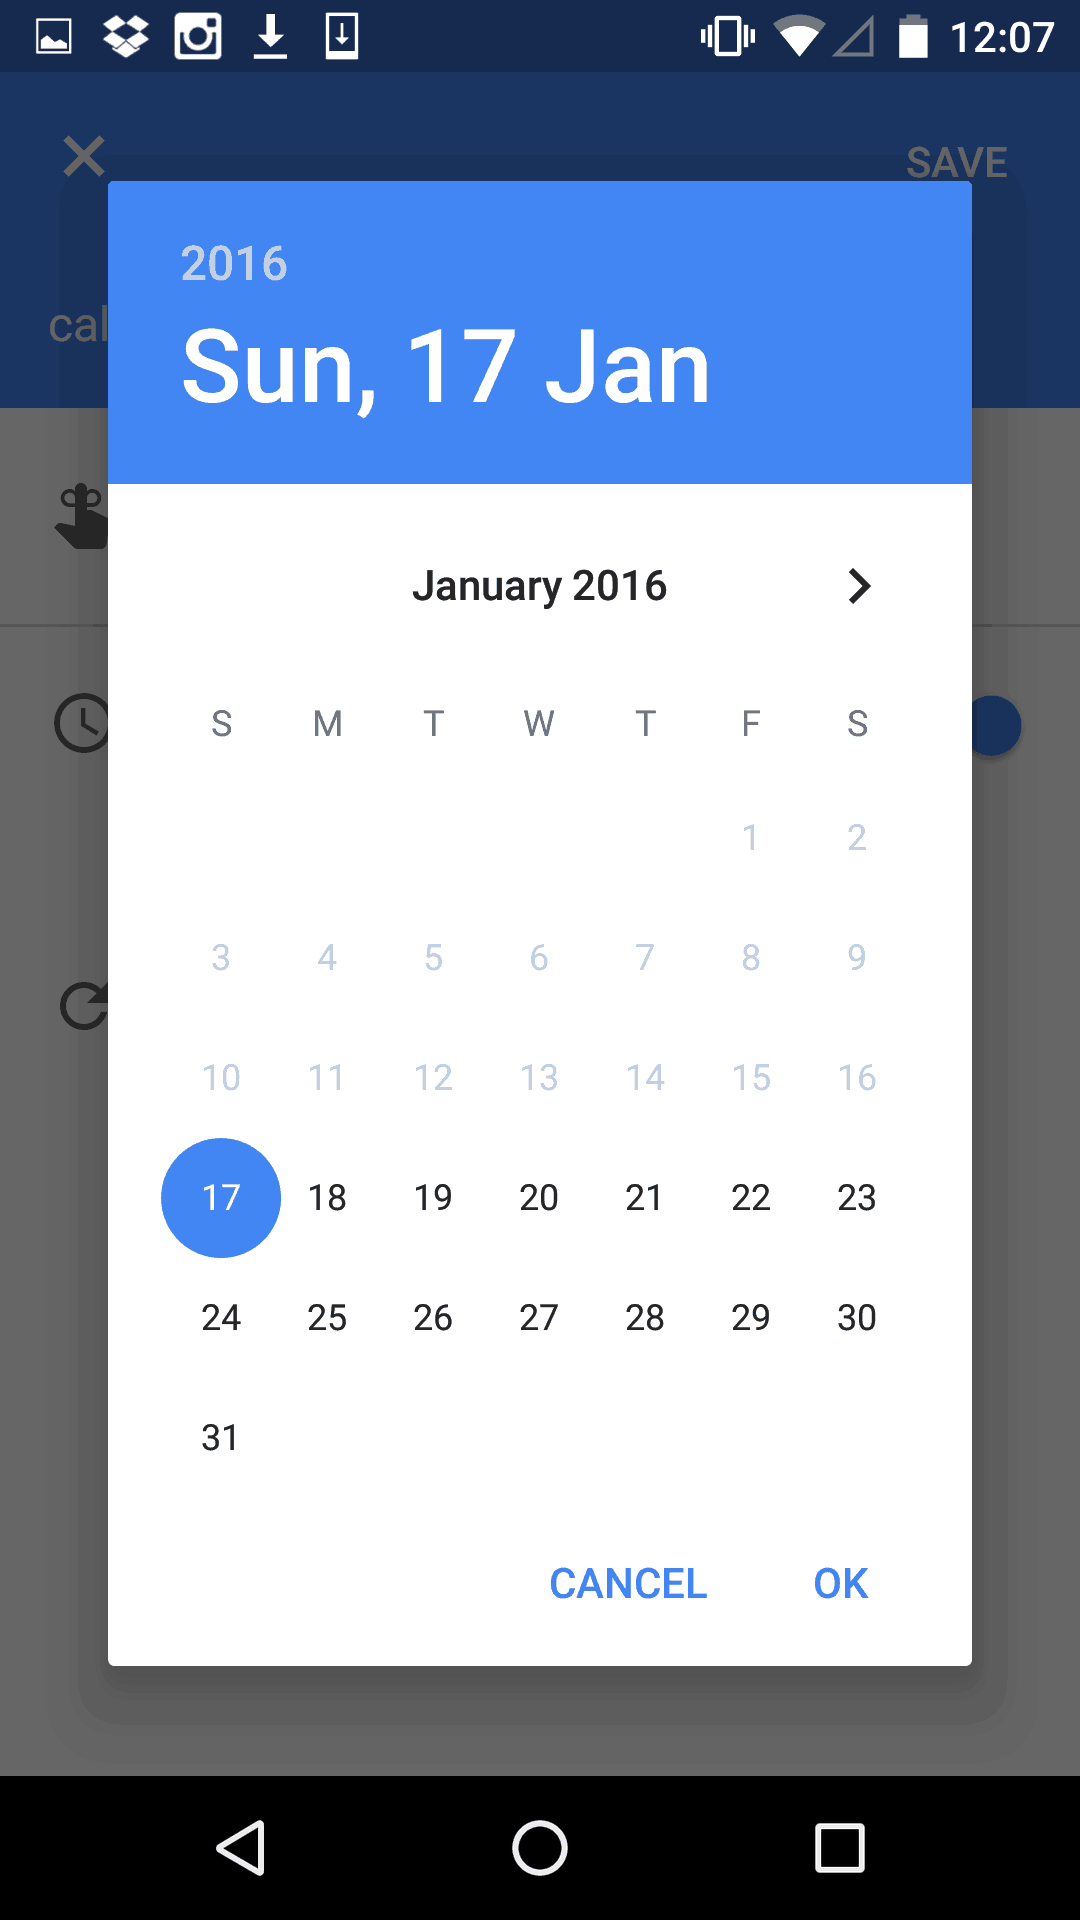 Weekly Calendar Ui : Date picker by google calendar ui inspiration interface